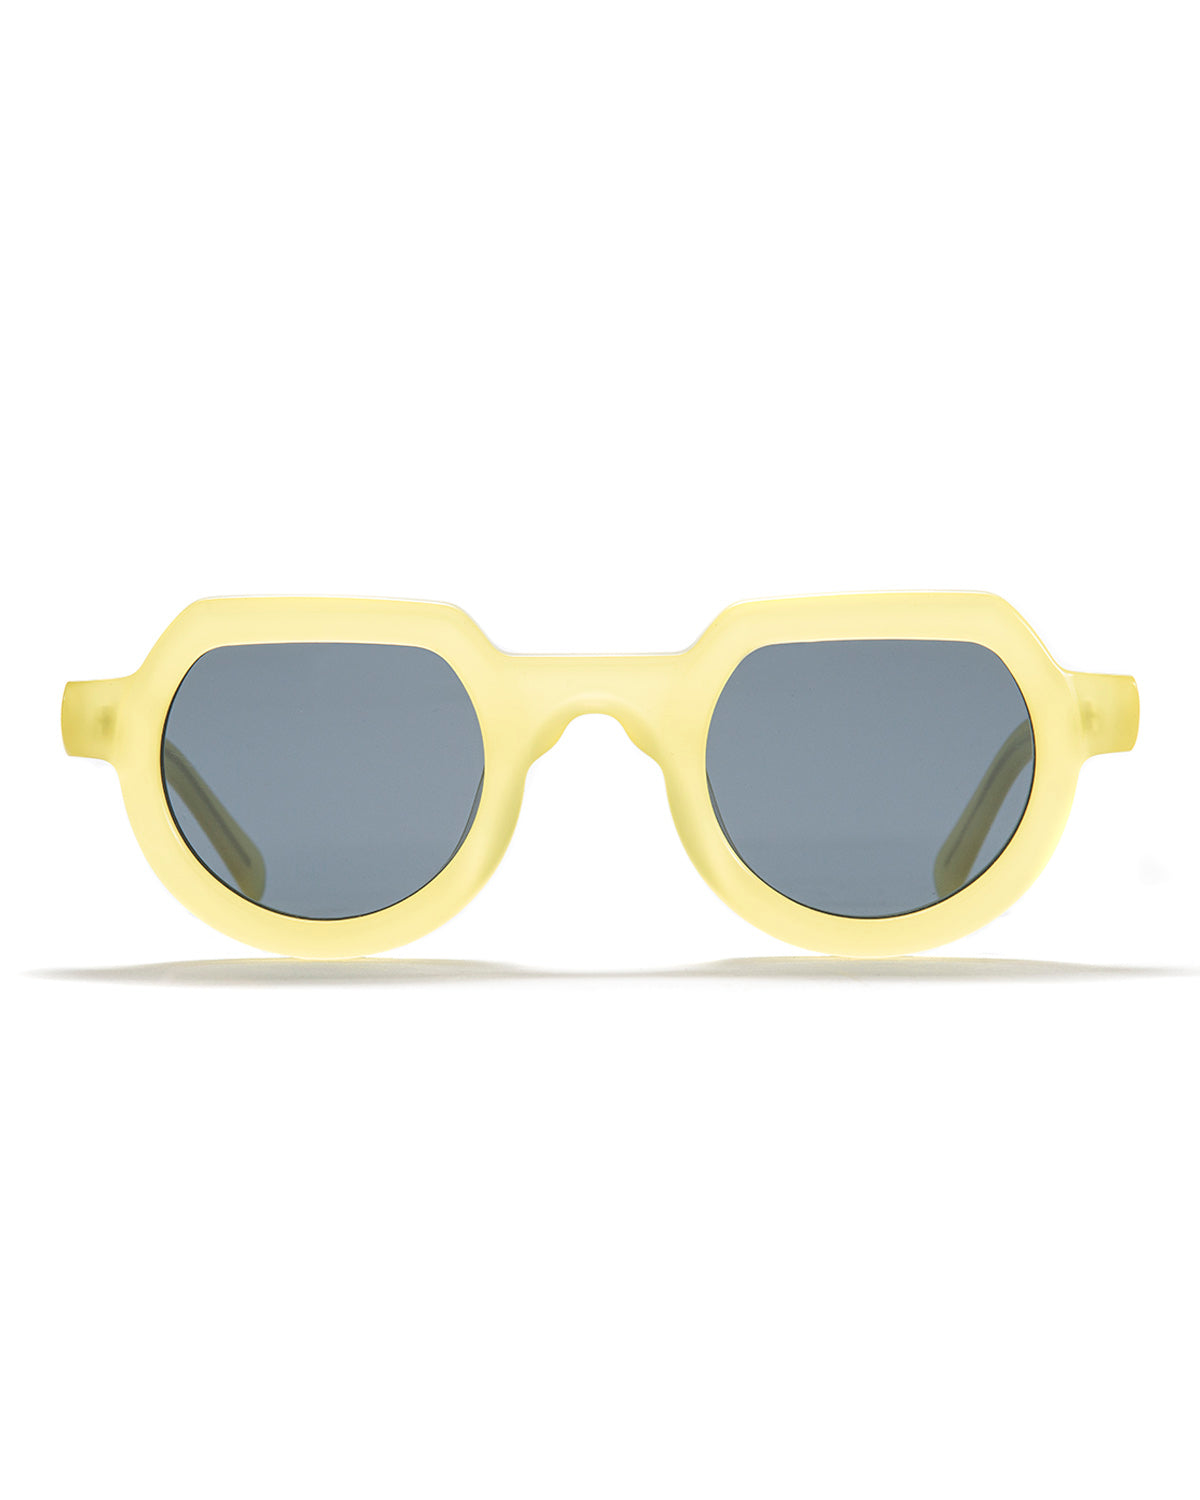 Tani Sunglasses - Translucent Yellow - Brain Dead